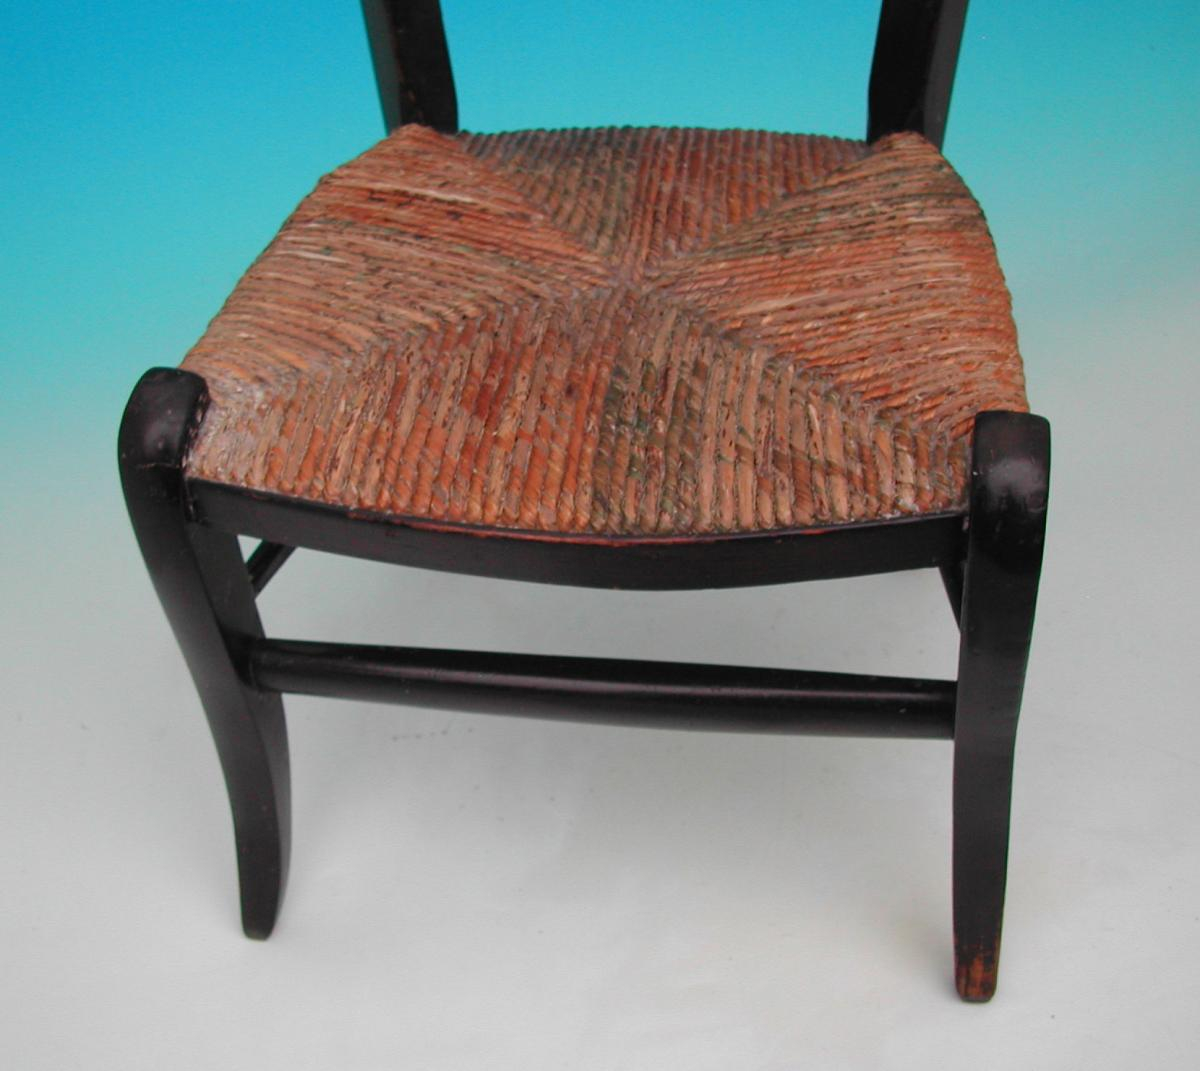 Exceptionnel Antique Regency Furniture 19thc Painted Childs Chair (c. 1820 To C. 1830  English)